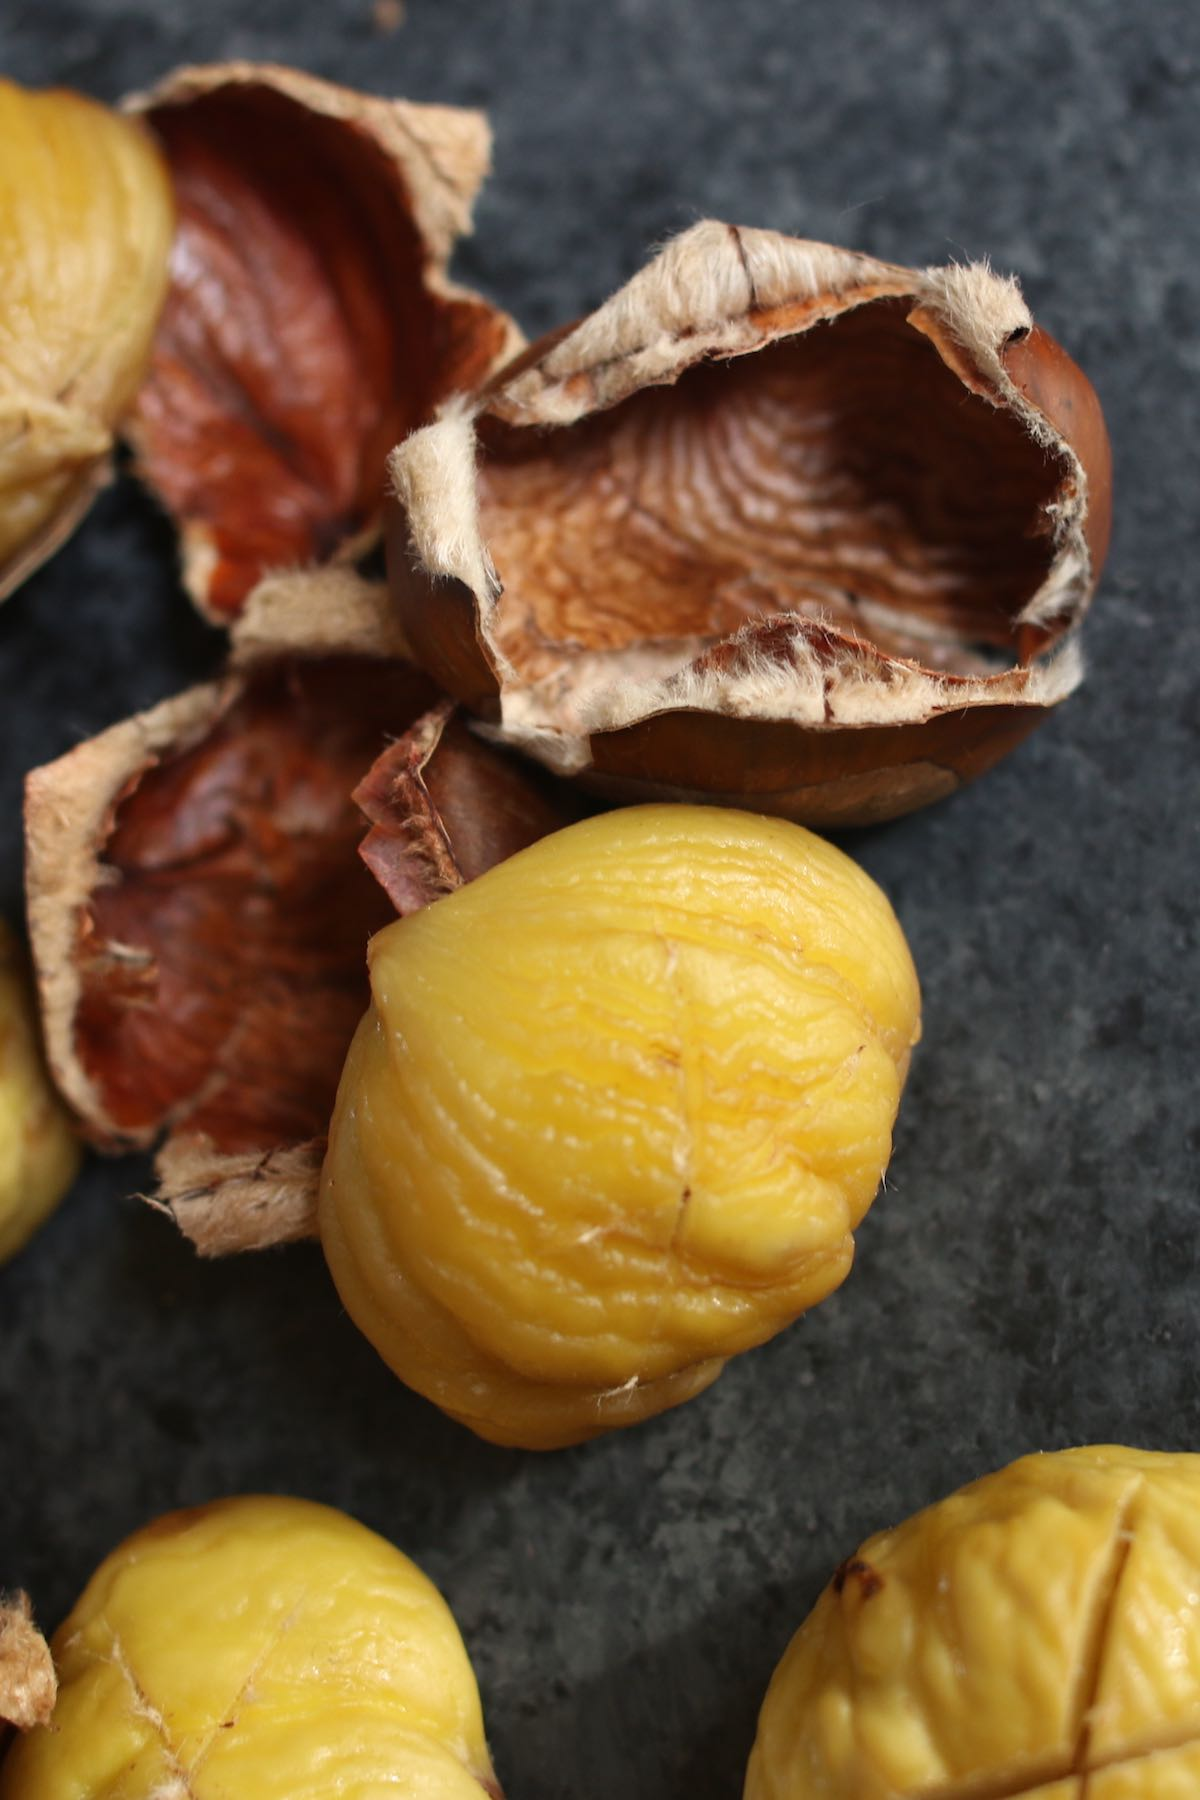 Closeup showing peeled chestnusts.